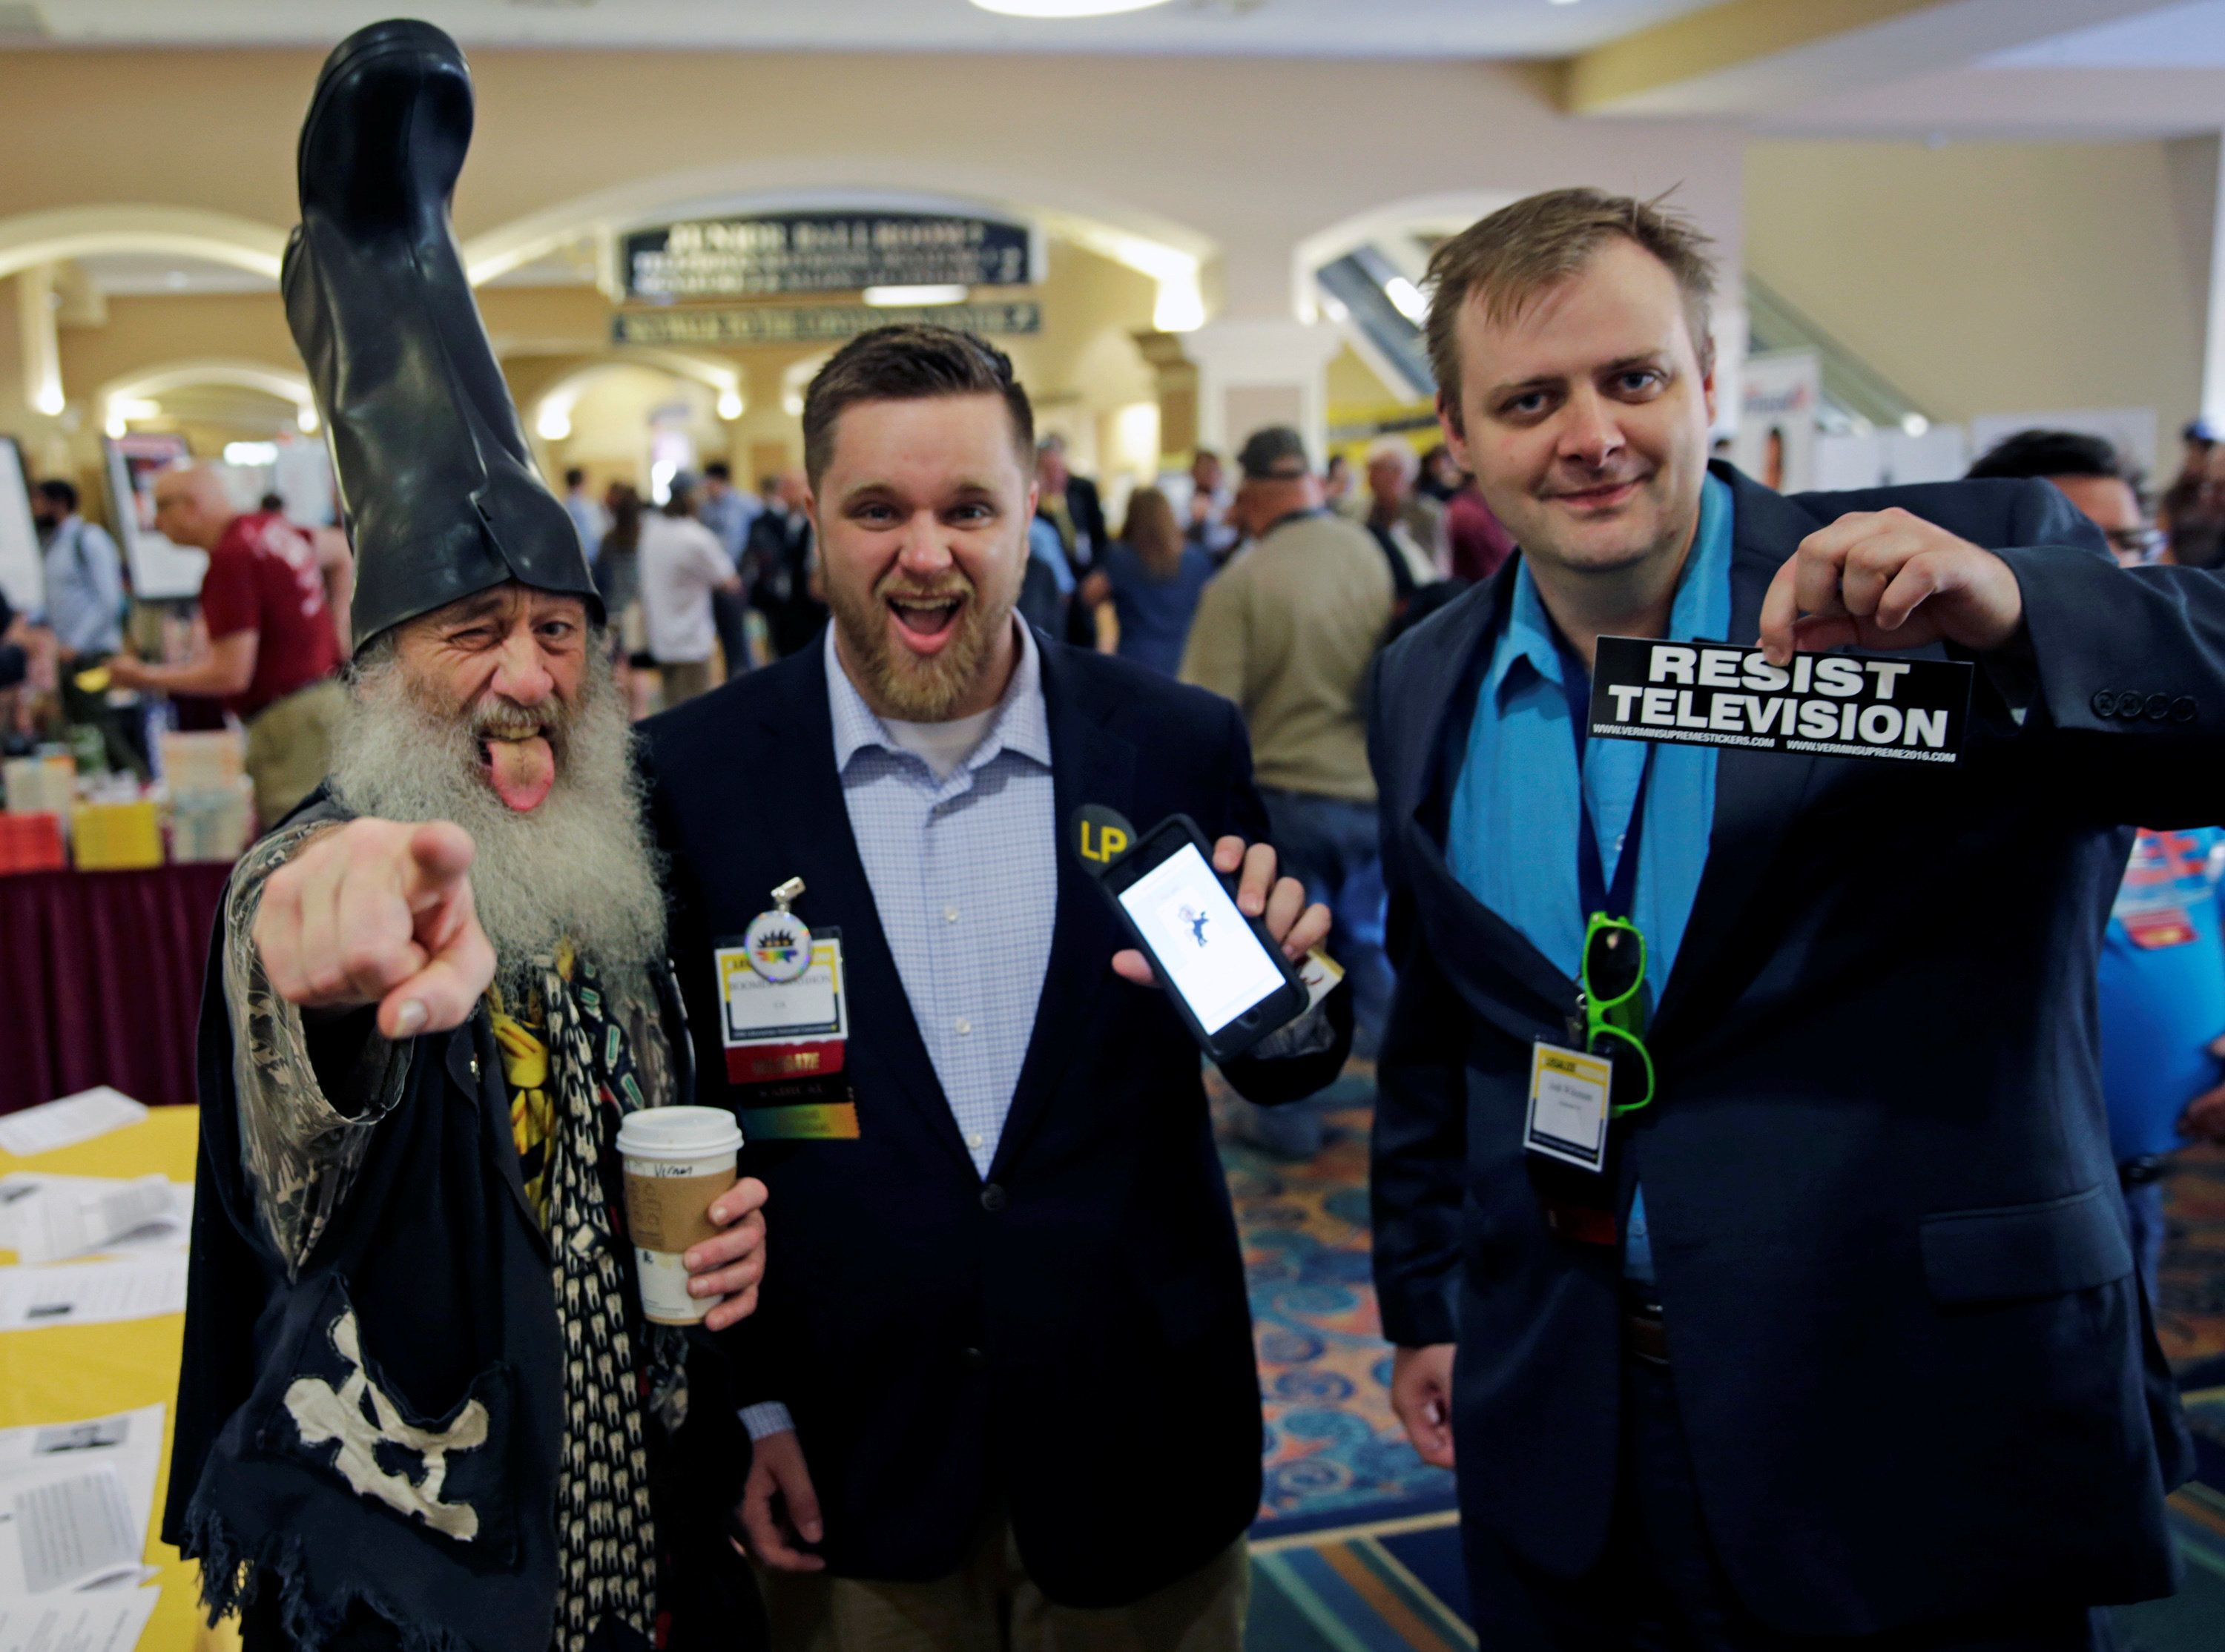 At least, Vermin Supreme (left) and others seemed to enjoy themselves at the Libertarians' convention.